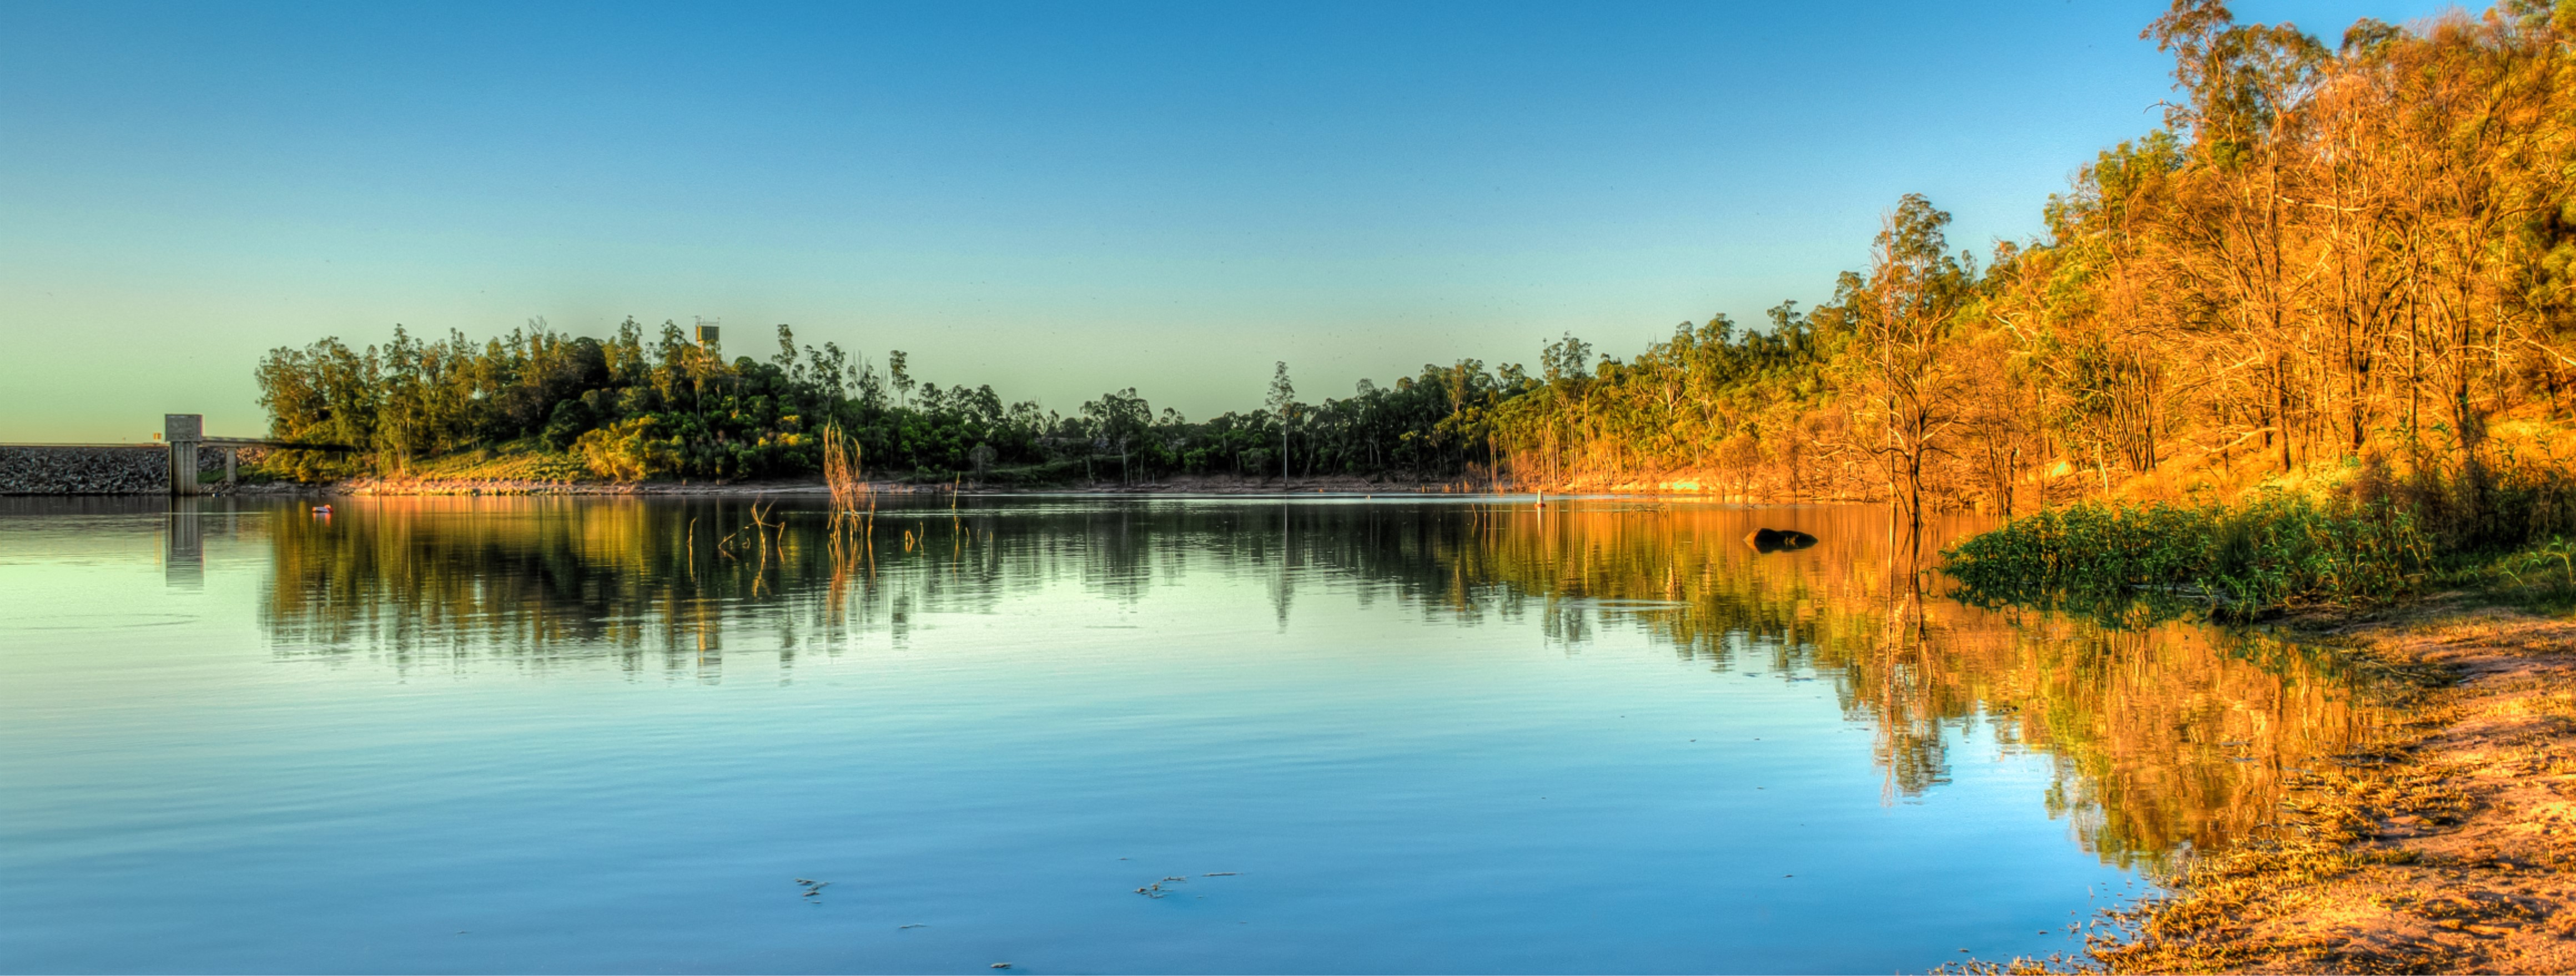 Go Fishing + Red Clawing | Central Highlands Queensland